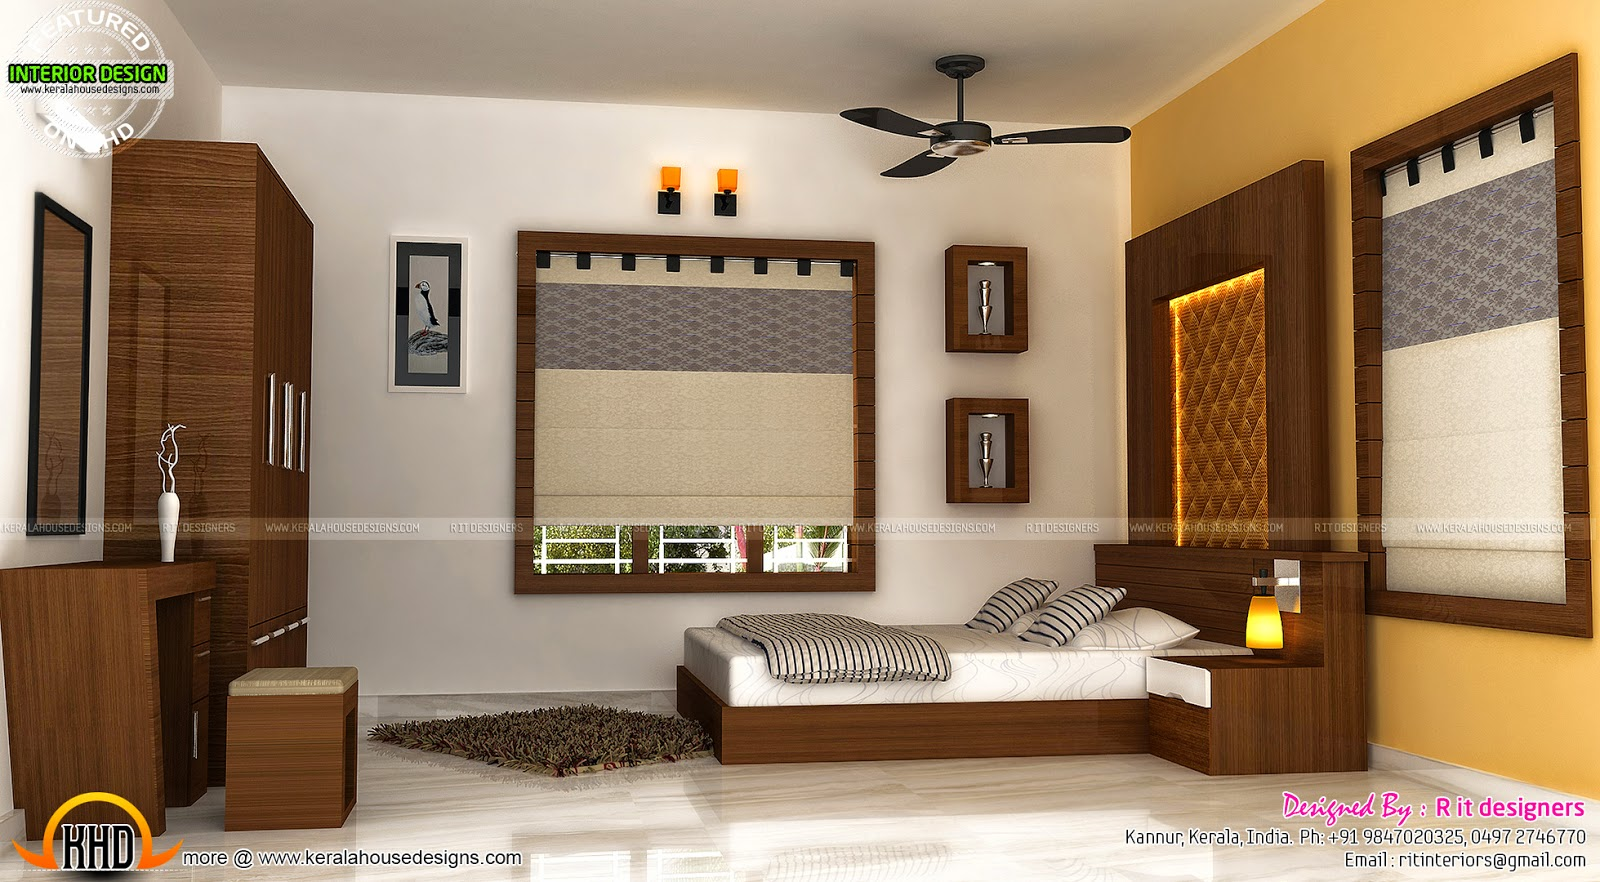 Staircase bedroom dining interiors kerala home design and floor plans Interior design ideas for kerala houses